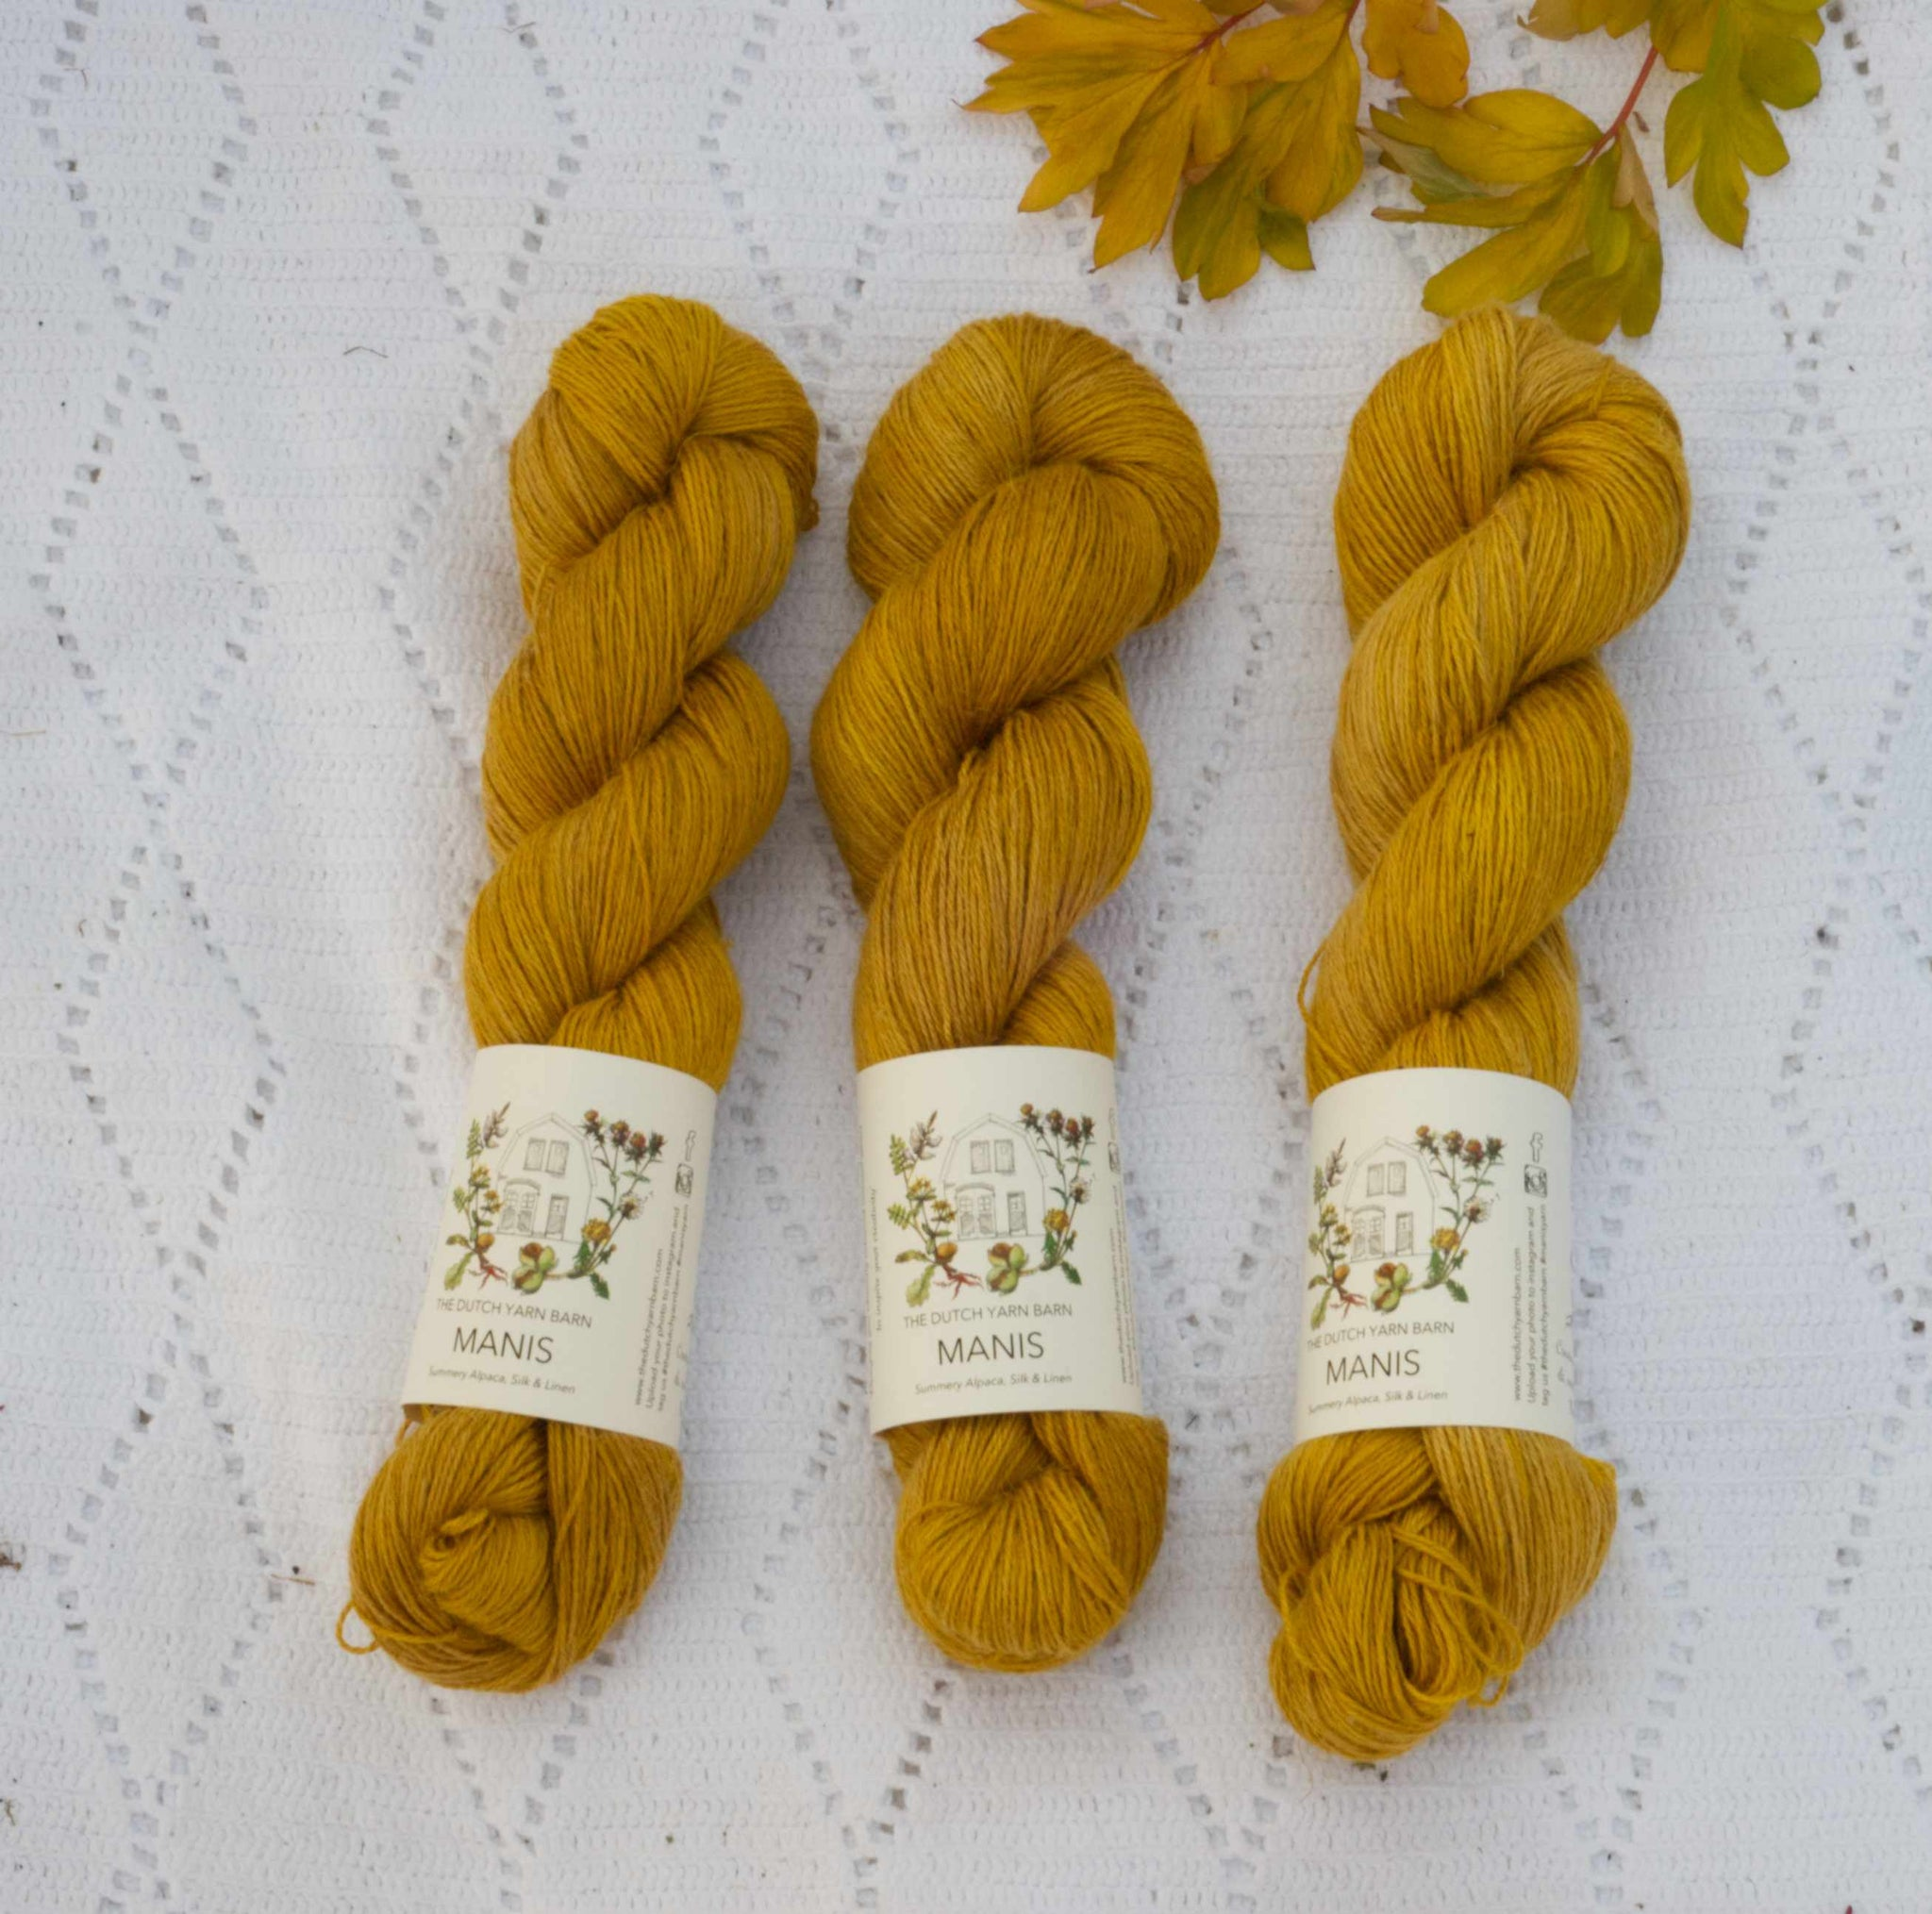 Manis - summery yarn with alpaca, silk and linen